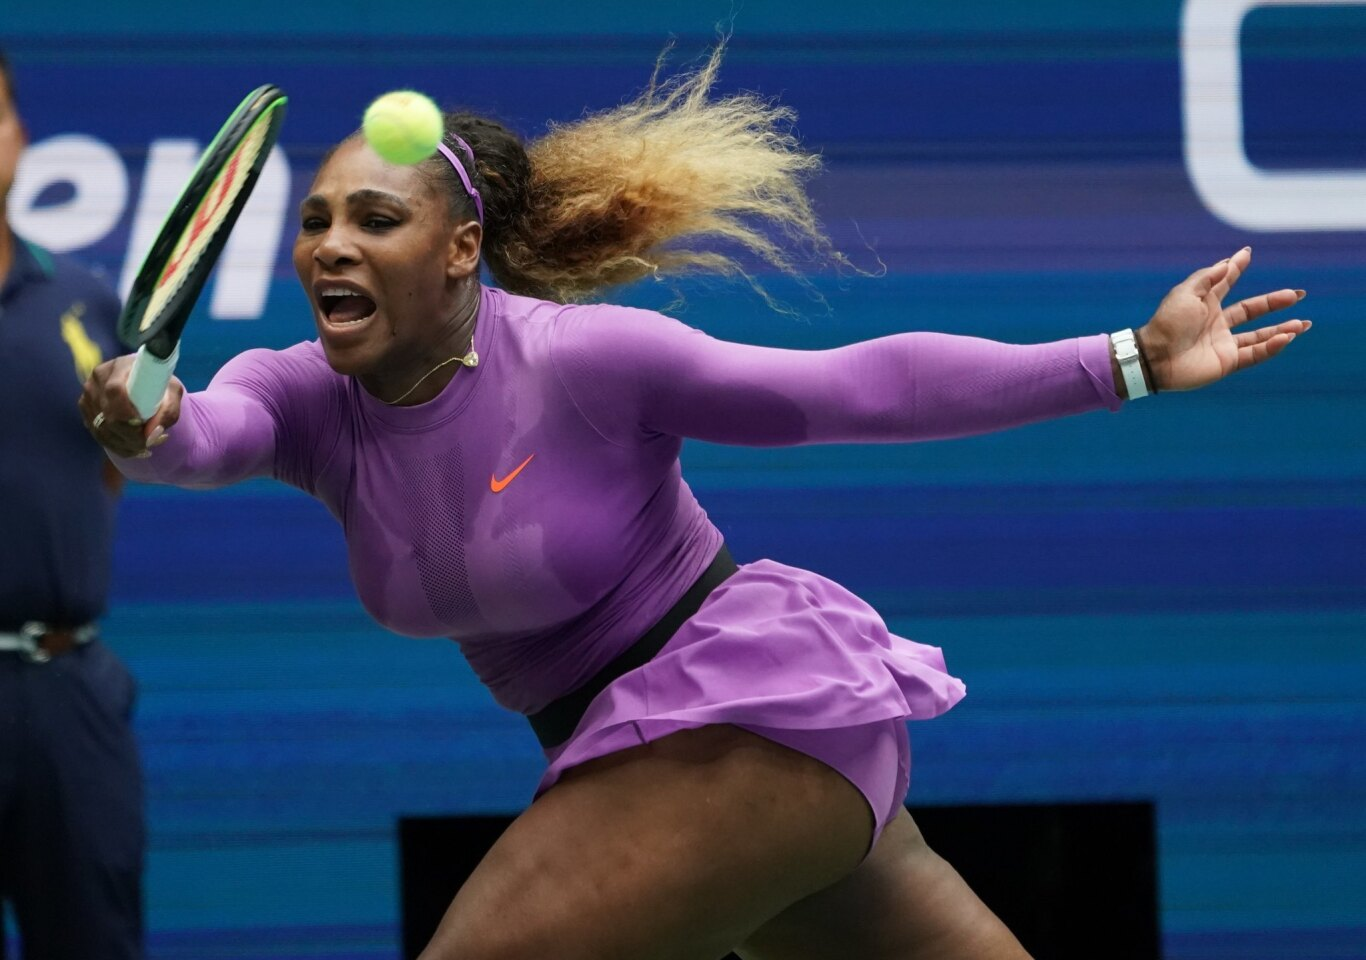 Serena Williams, Sept. 7, 2019